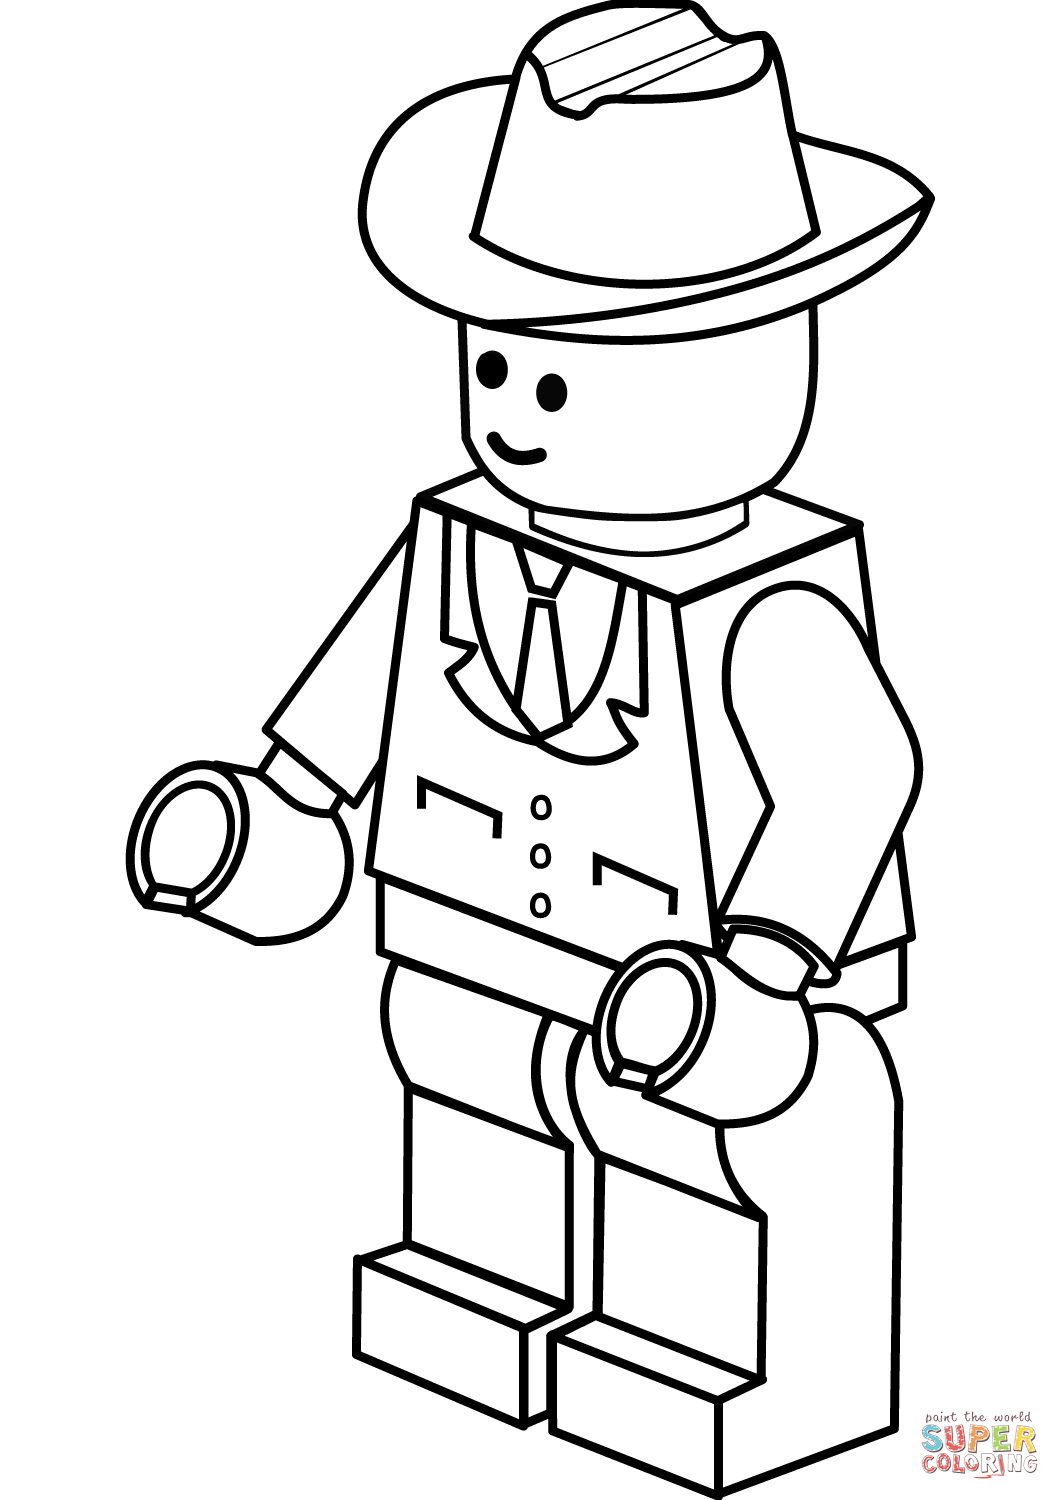 Lego Man In Cowboy Hat Coloring Page